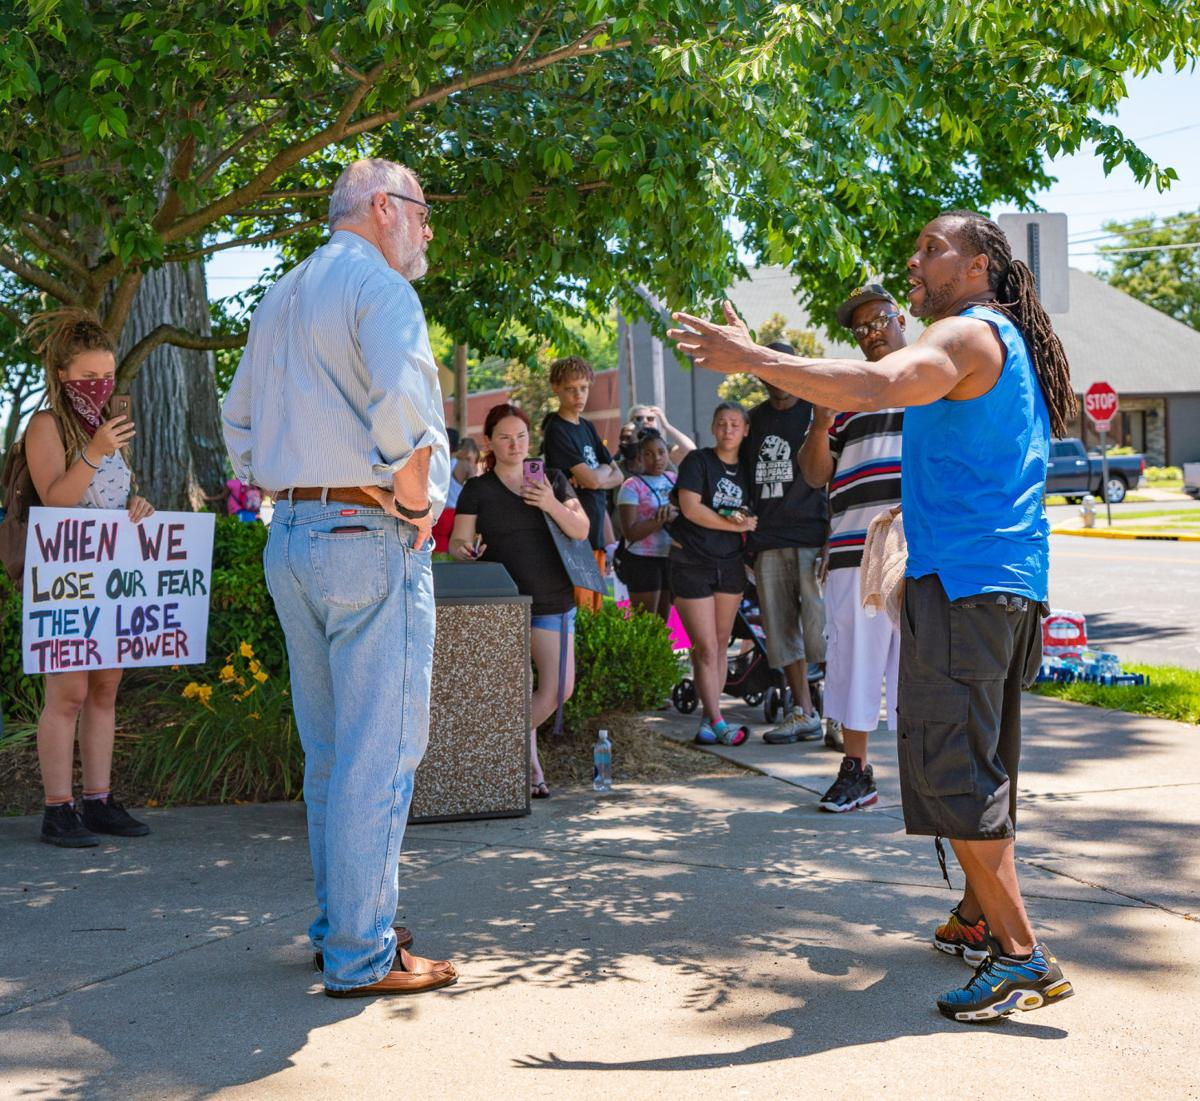 Protestors get audience with Clymer